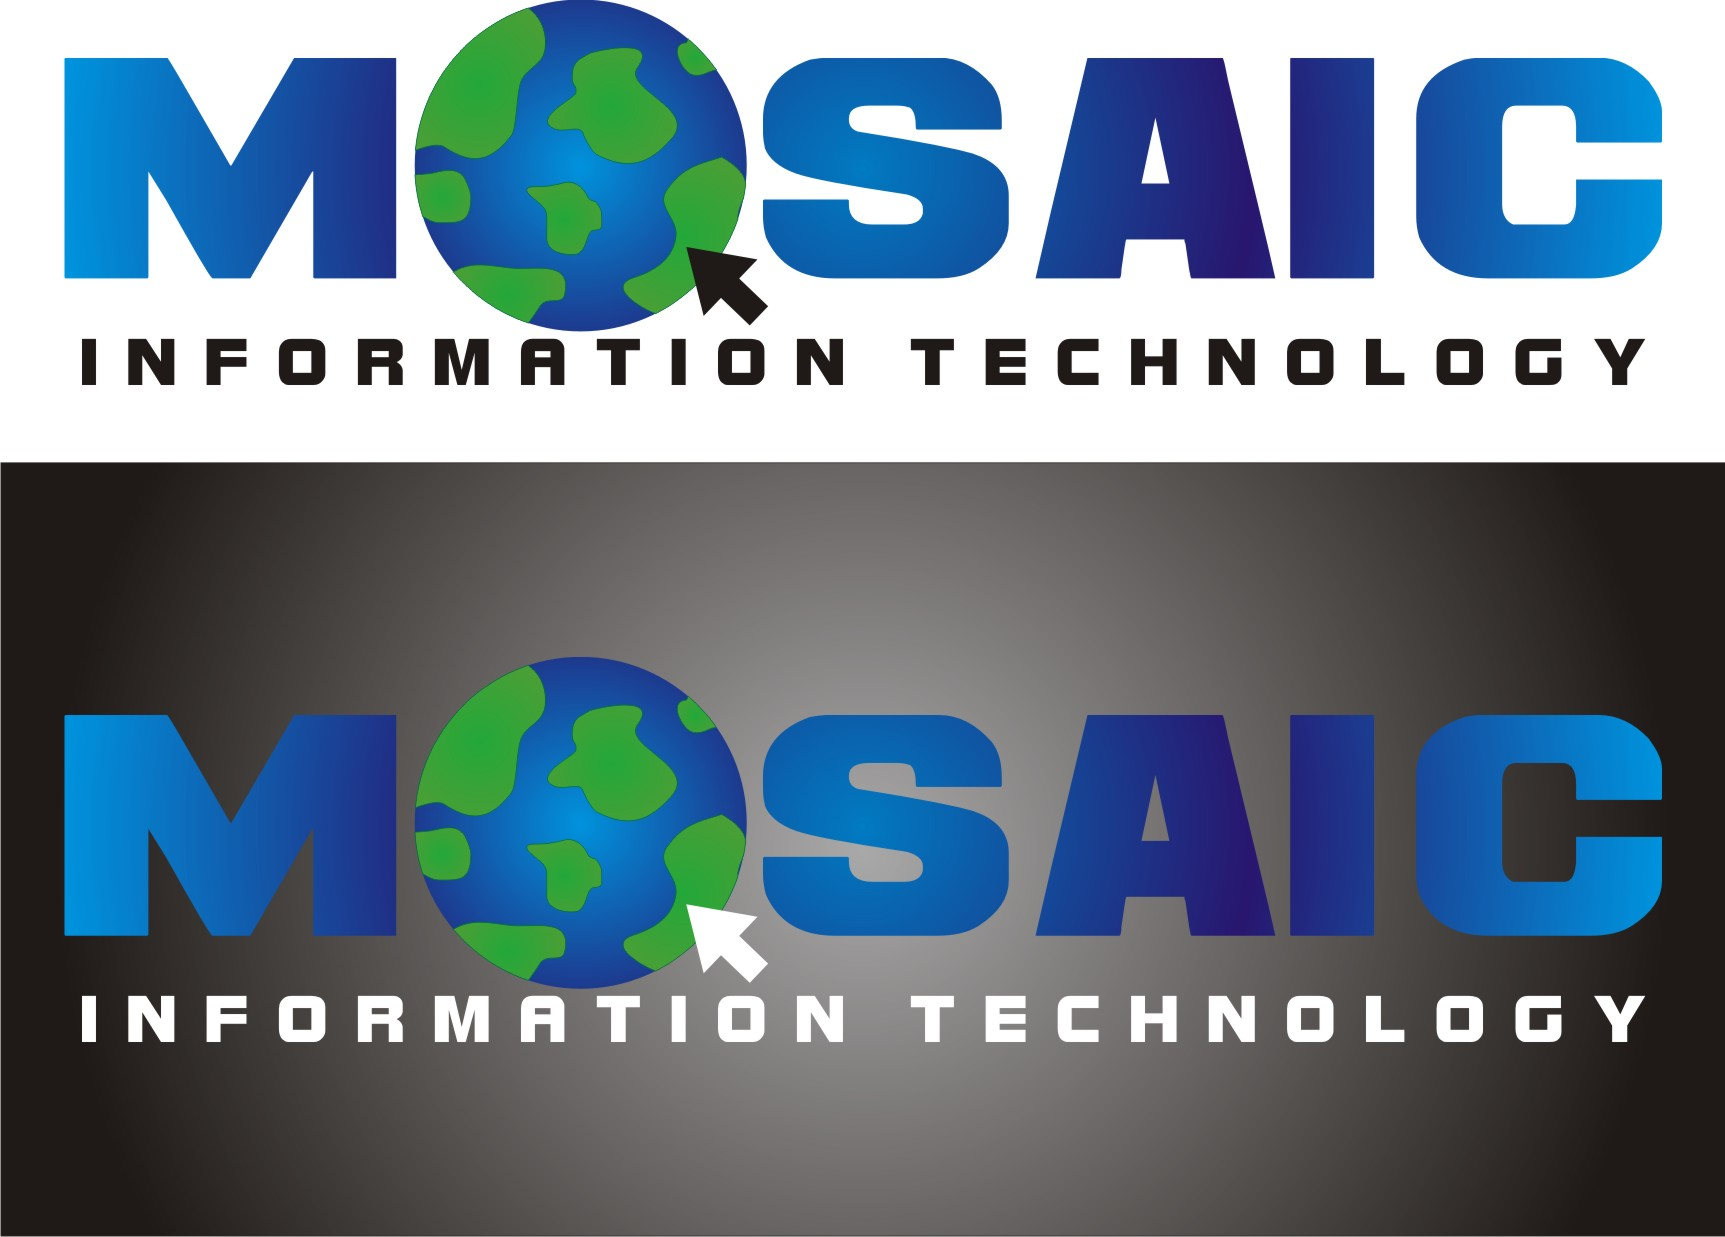 Logo Design by kambal - Entry No. 64 in the Logo Design Contest Mosaic Information Technology Logo Design.